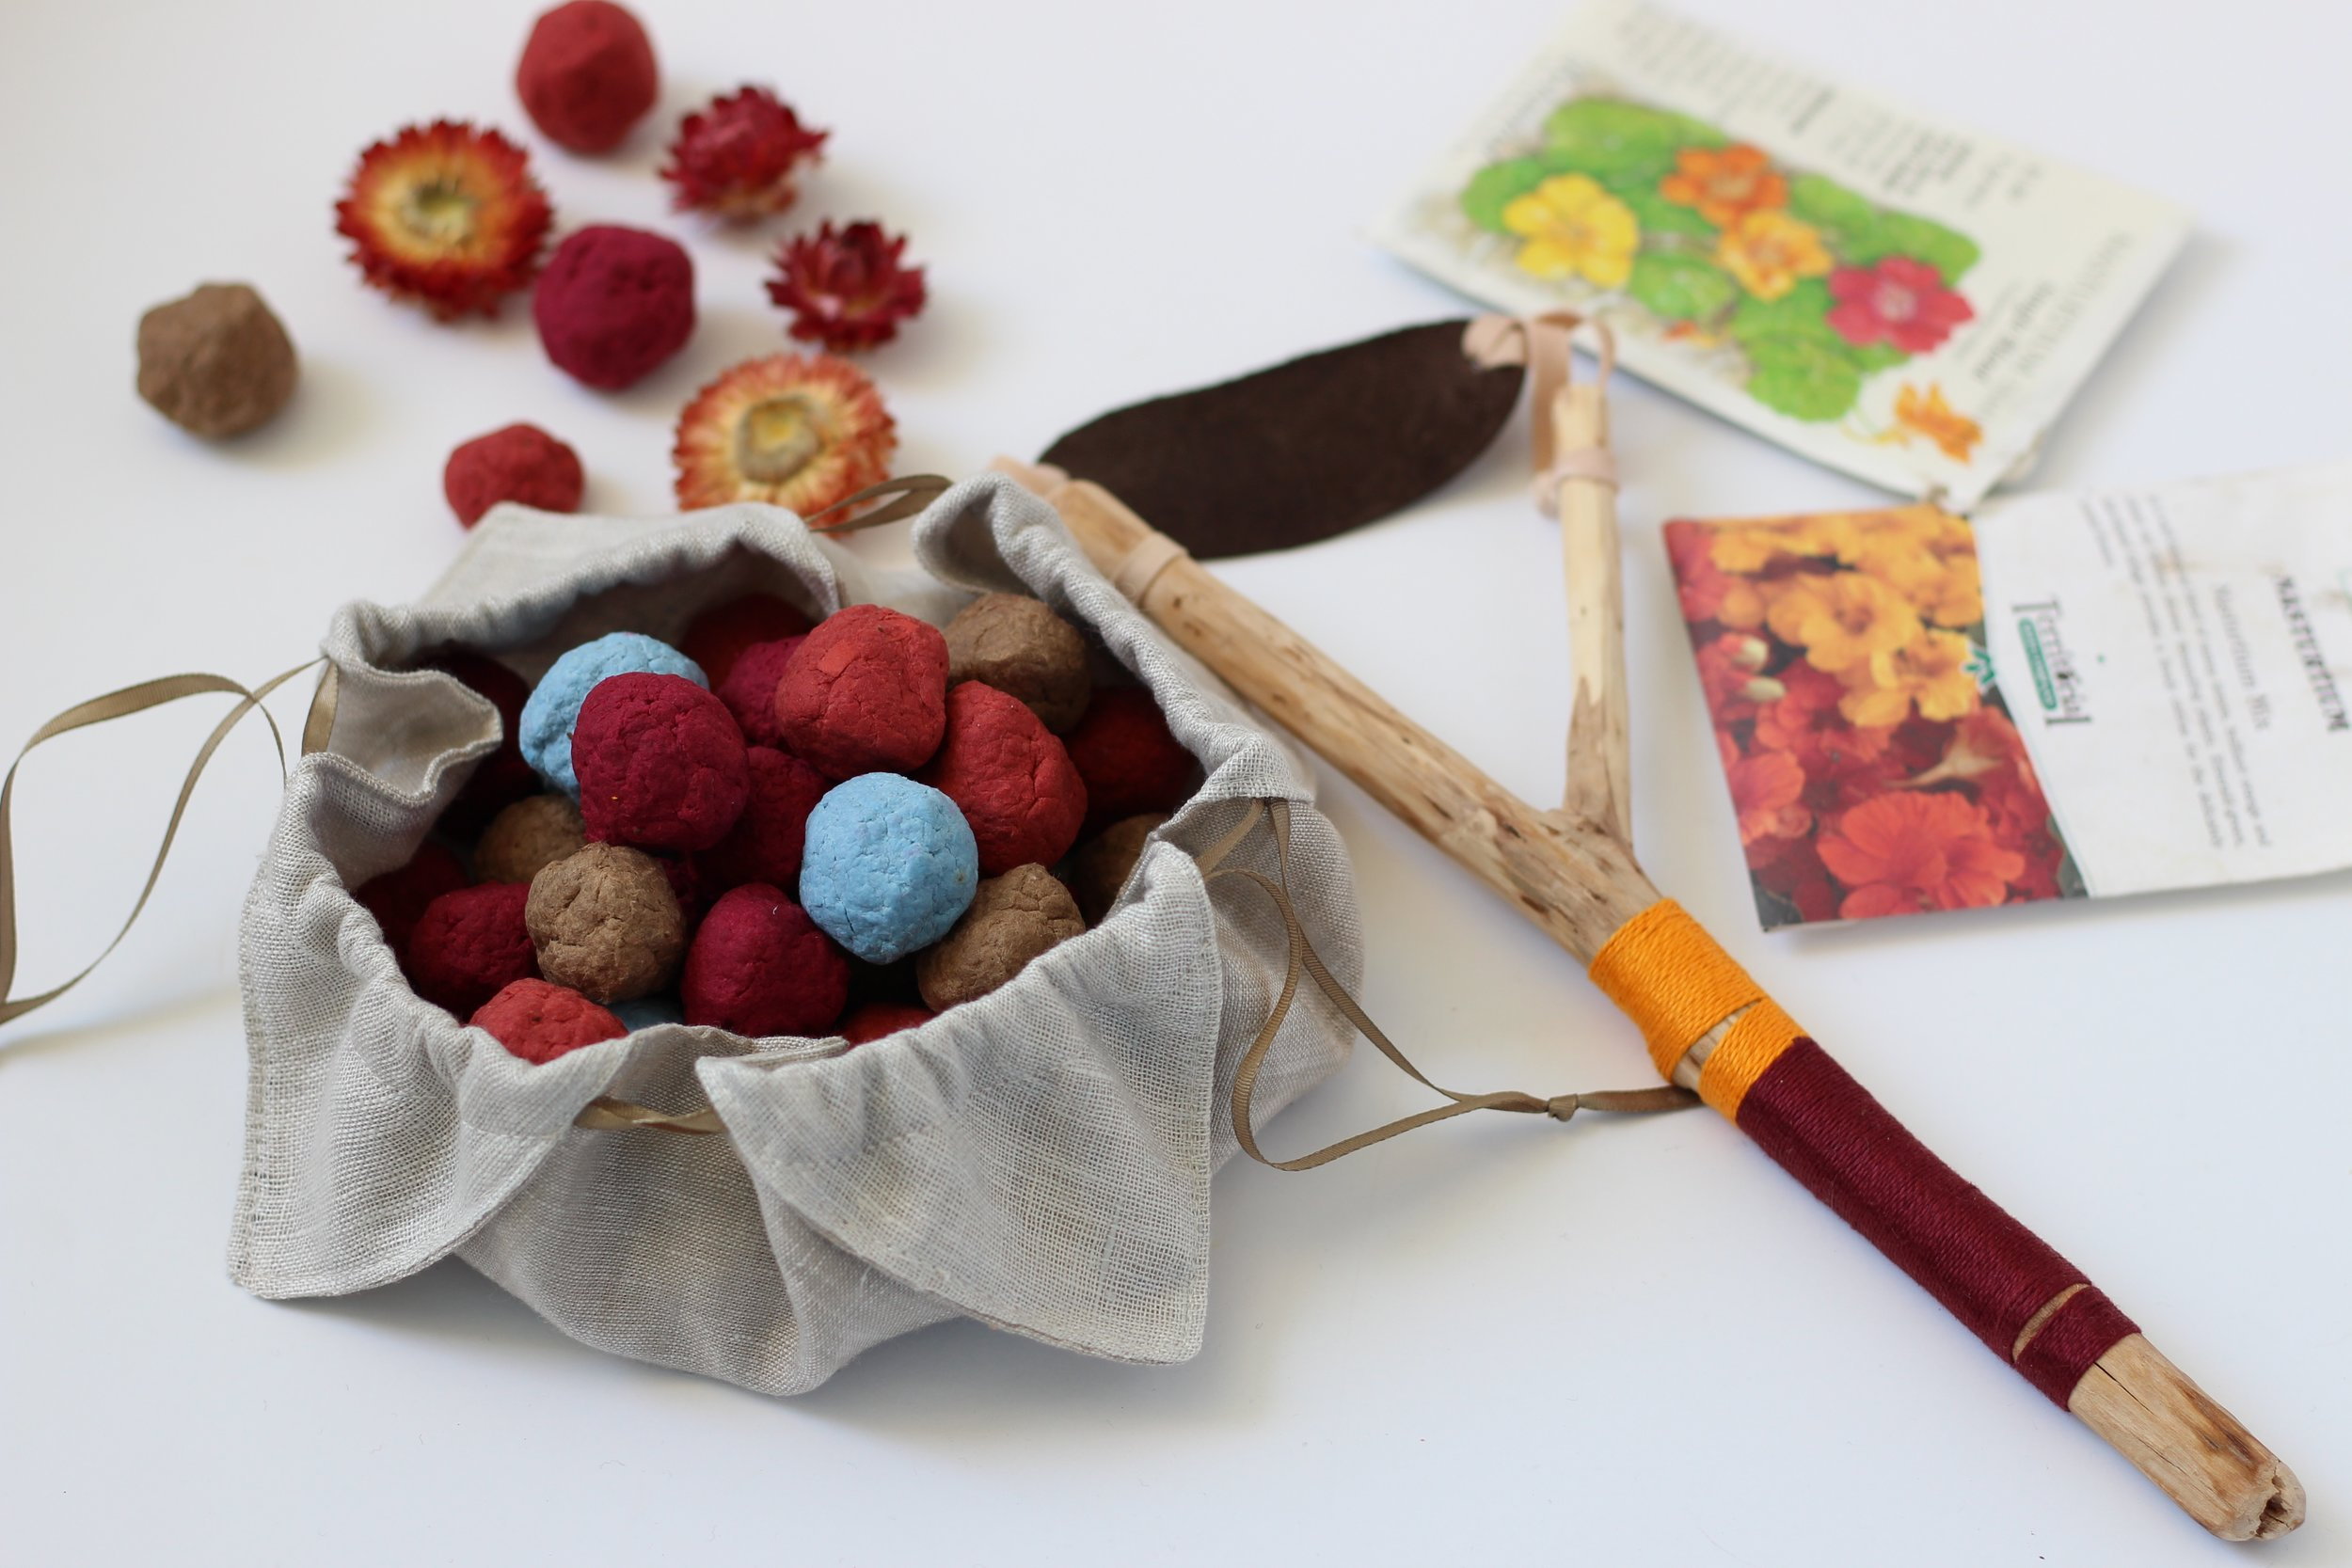 A homemade slingshot waits to be used to send our wildflower seedballs out into the field to spread some flower joy. Handmade Paper Seed Pebbles are fun to make, and even more fun to give as a gift. What a conversation starter!